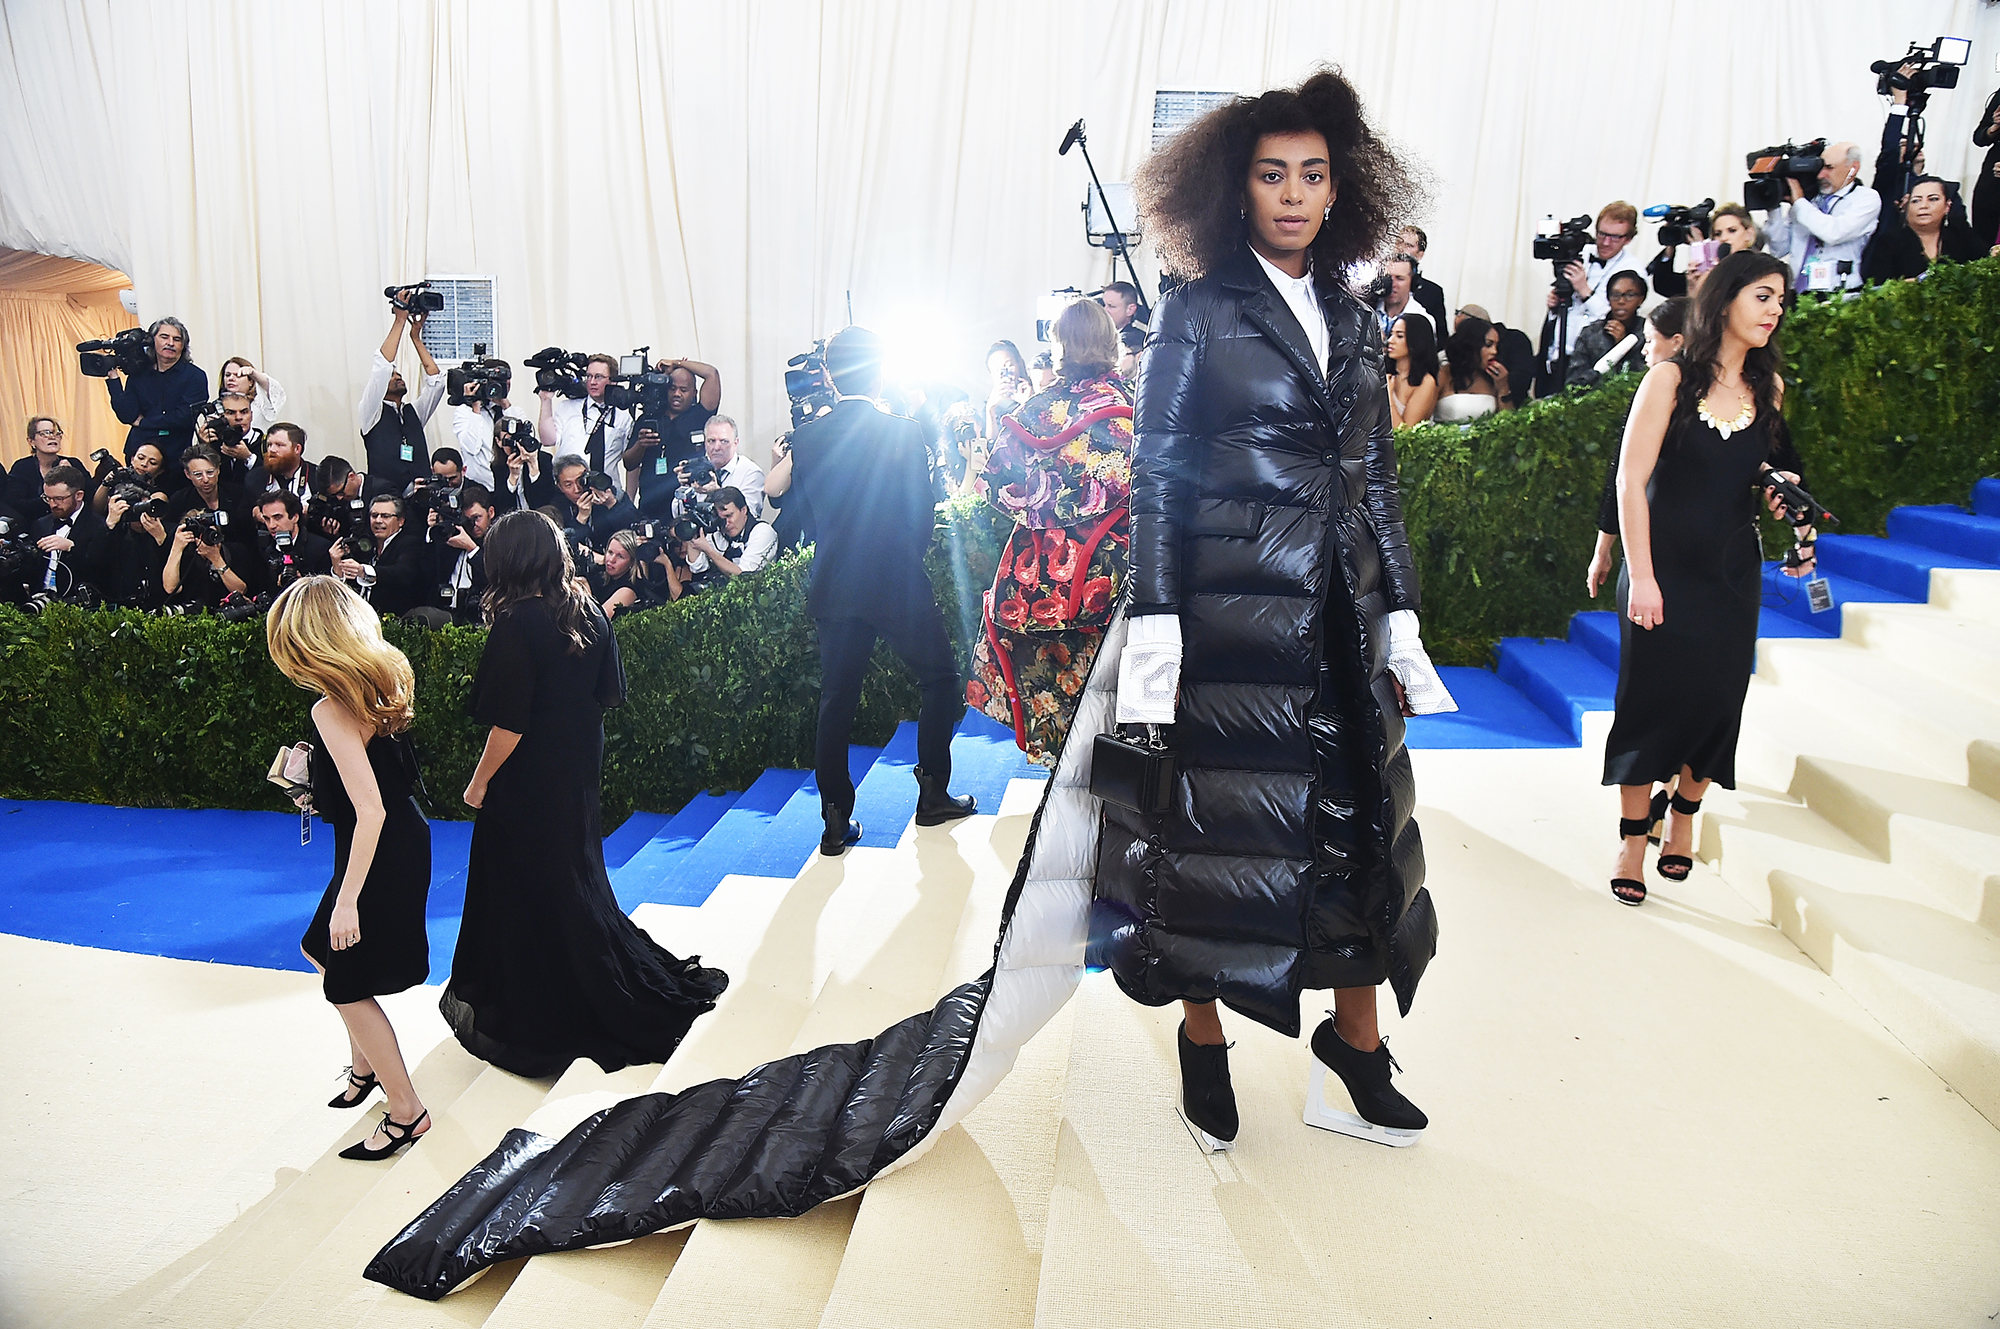 Solange attends The Metropolitan Museum of Art's Costume Institute benefit gala celebrating the opening of the Rei Kawakubo/Comme des Garçons: Art of the In-Between exhibition in New York City, on May 1, 2017.